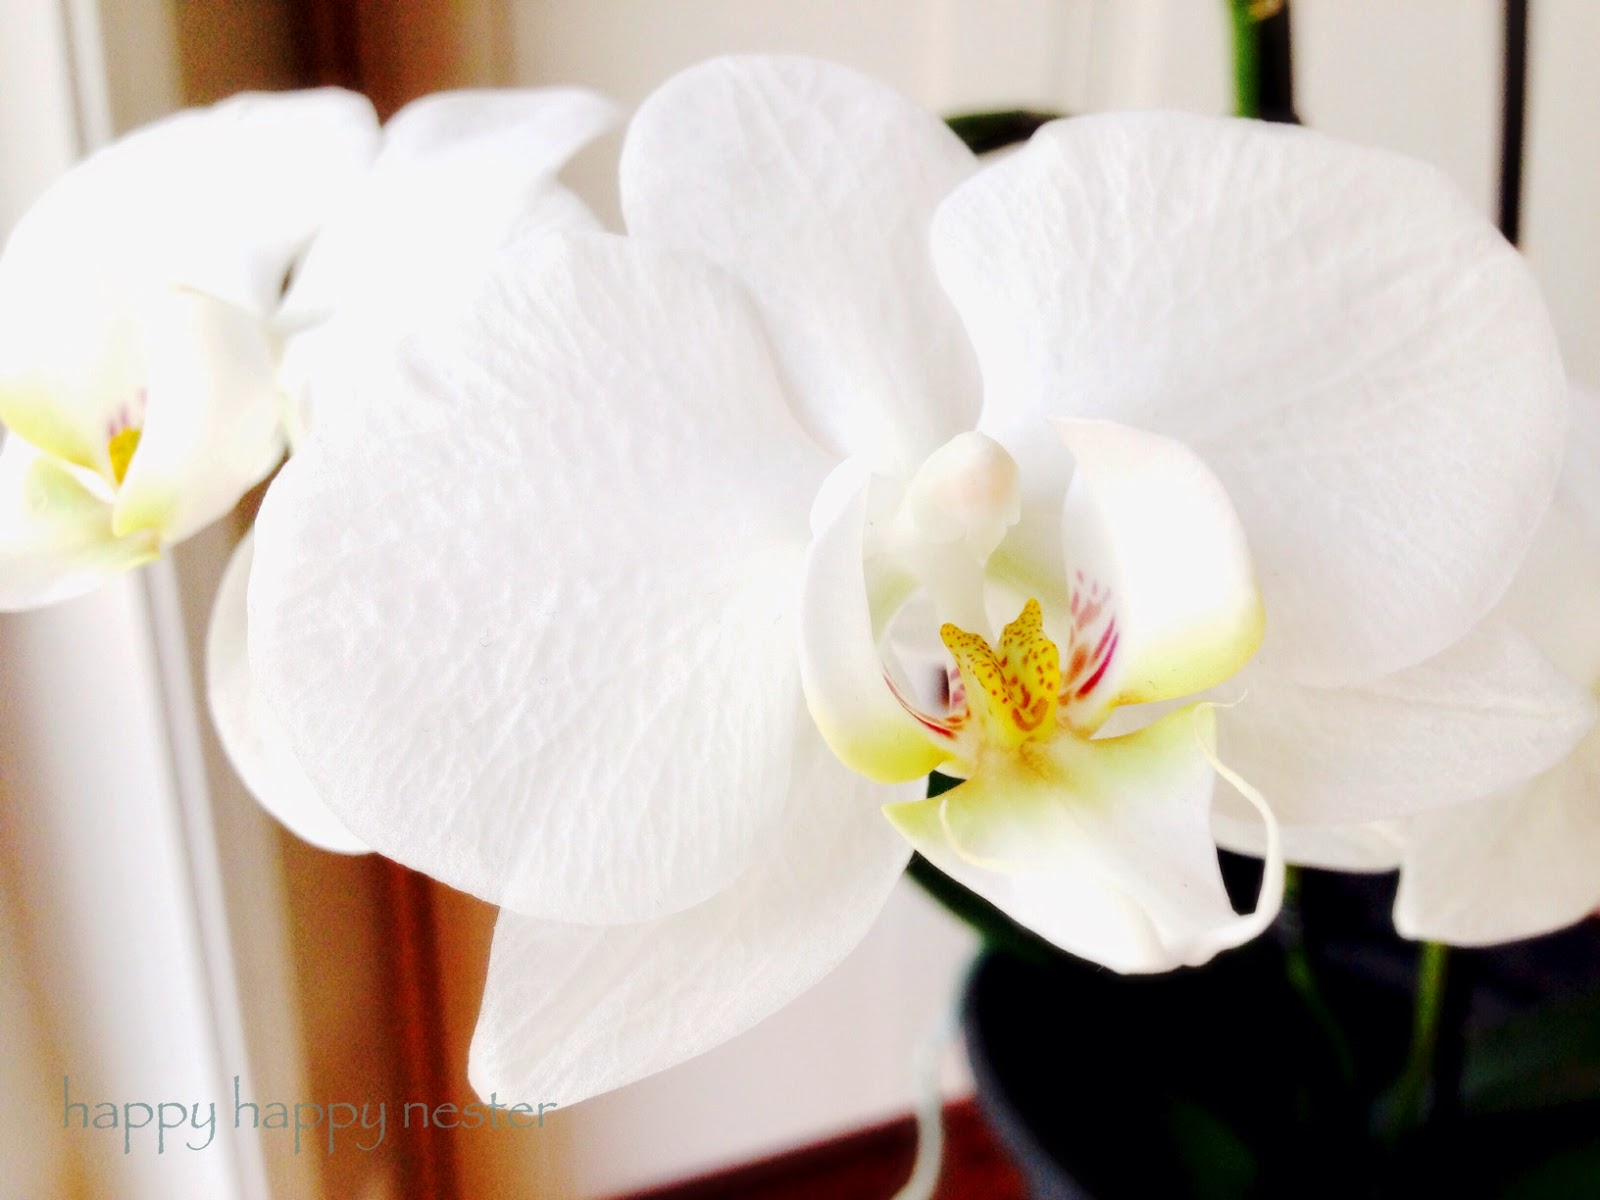 Happy Happy Nester How To Care For Phalaenopsis Orchids